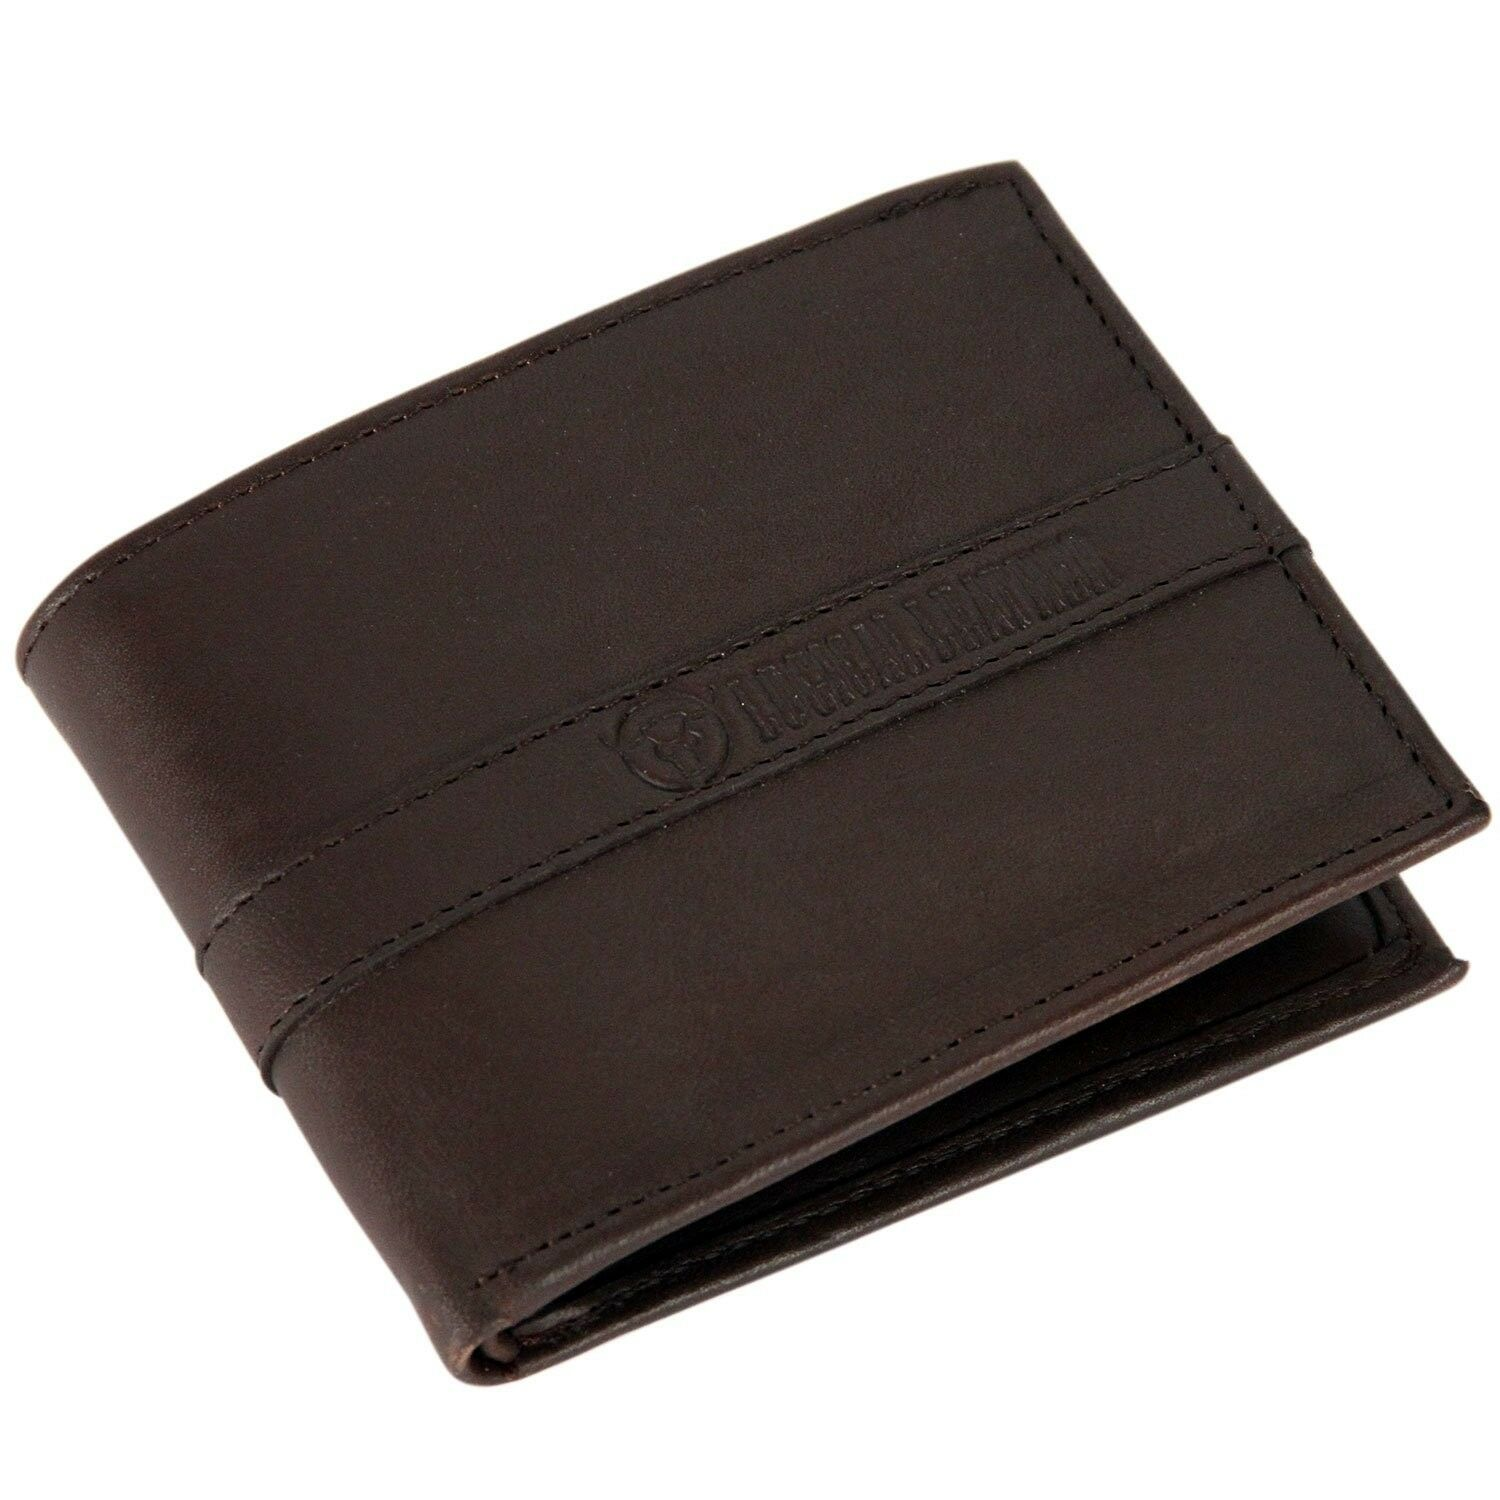 Logical Leather Bifold Wallet - NEW Genuine Leather Billfold for Men - Brown